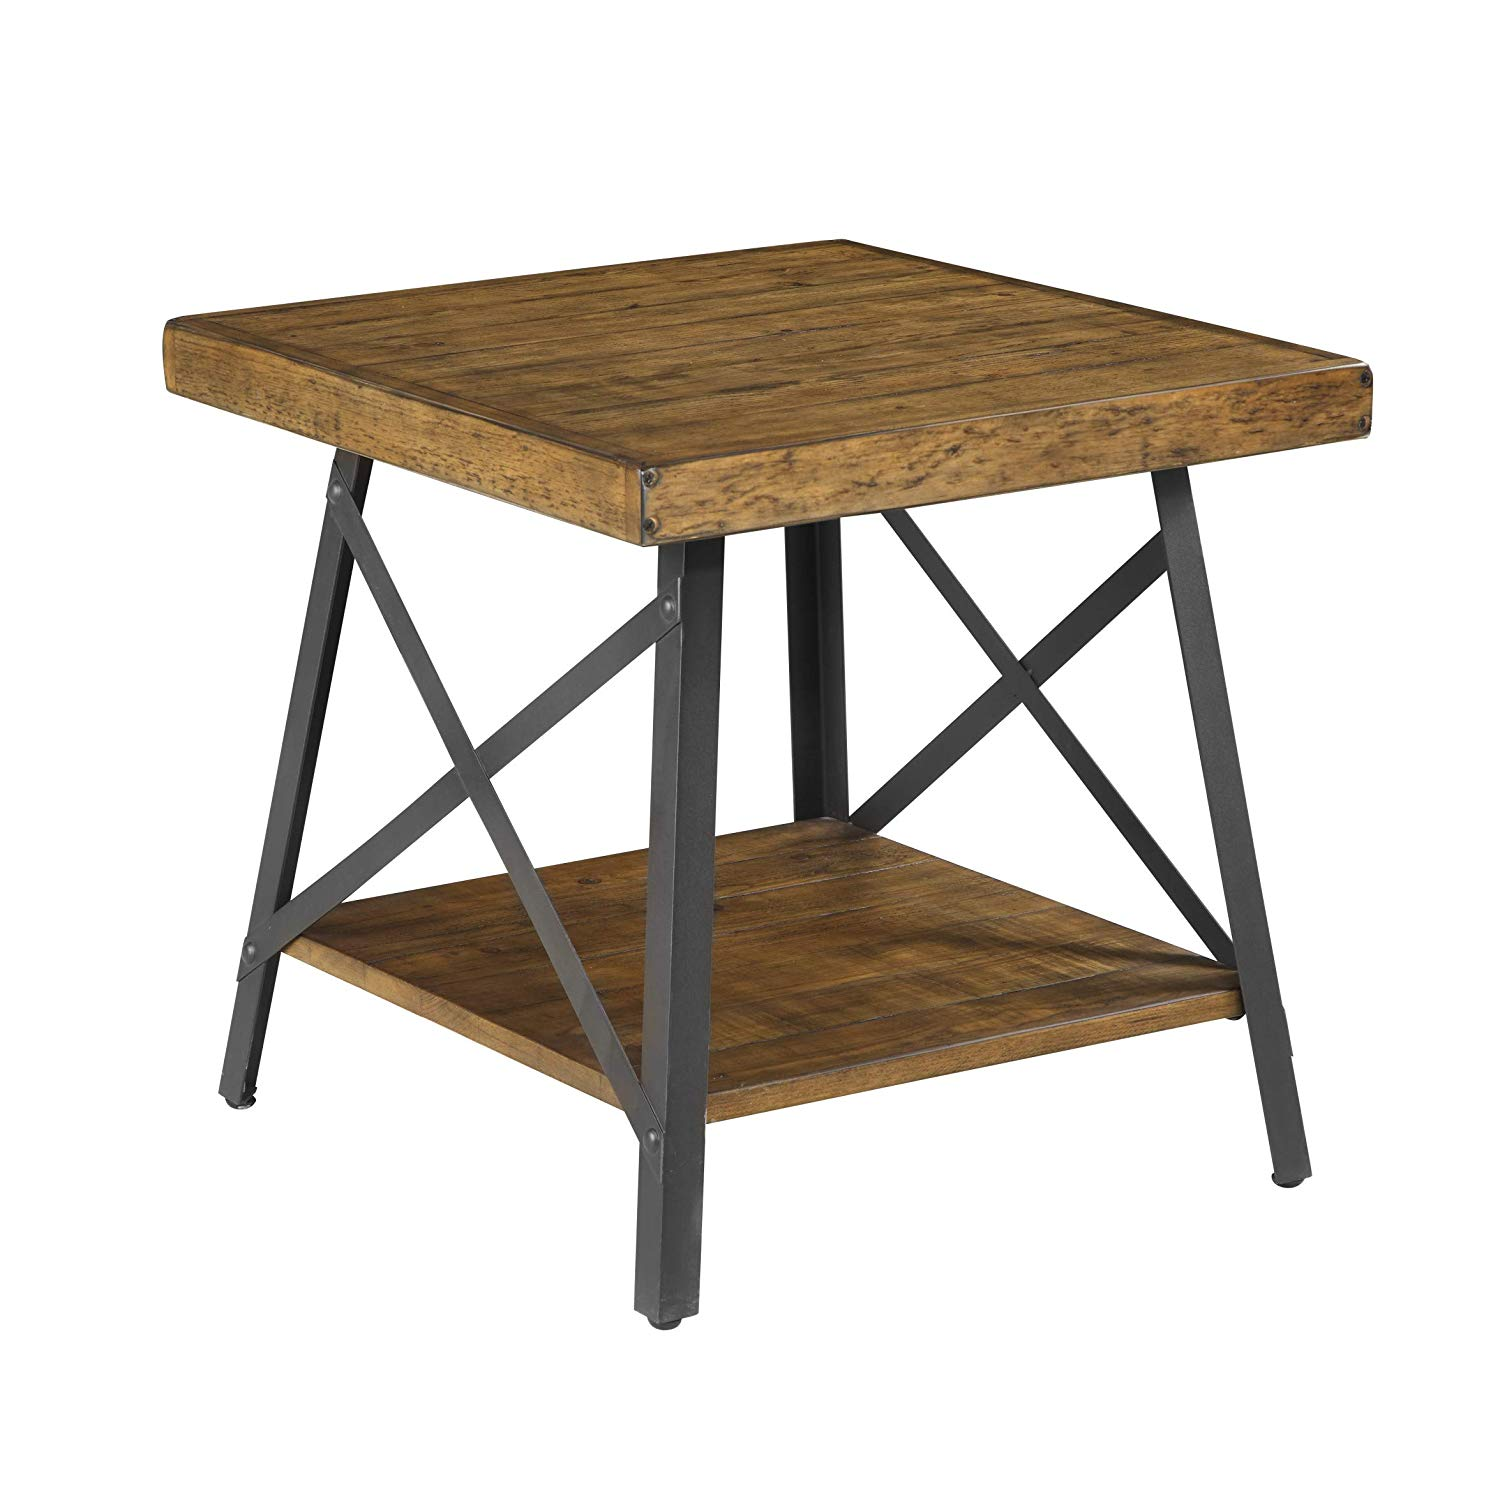 emerald home chandler rustic wood end table with solid quatrefoil accent top metal base and open storage shelf kitchen dining kids chairs target winsome timmy lightweight concrete